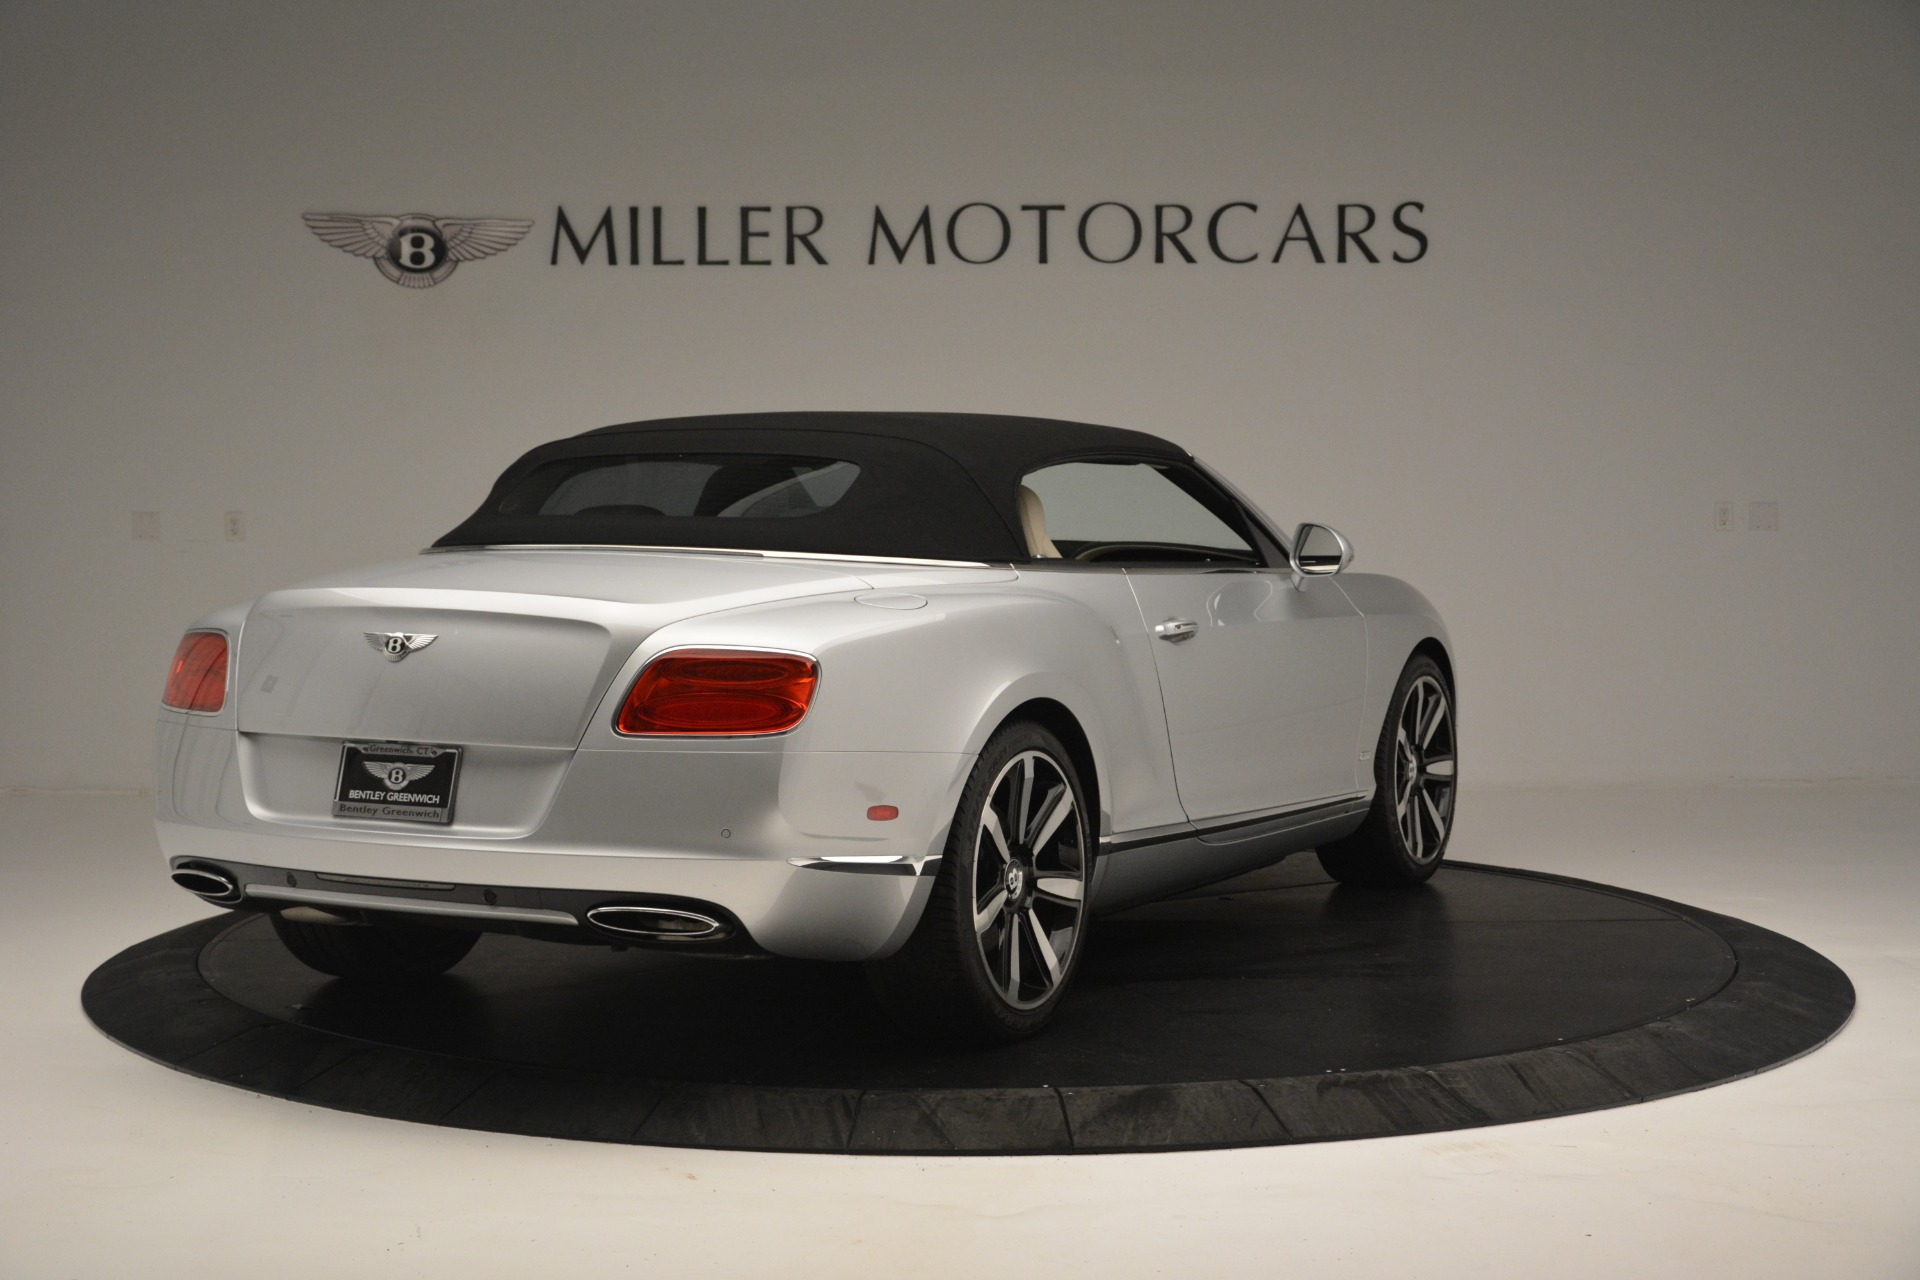 Used 2013 Bentley Continental GT W12 Le Mans Edition For Sale In Greenwich, CT 2519_p14